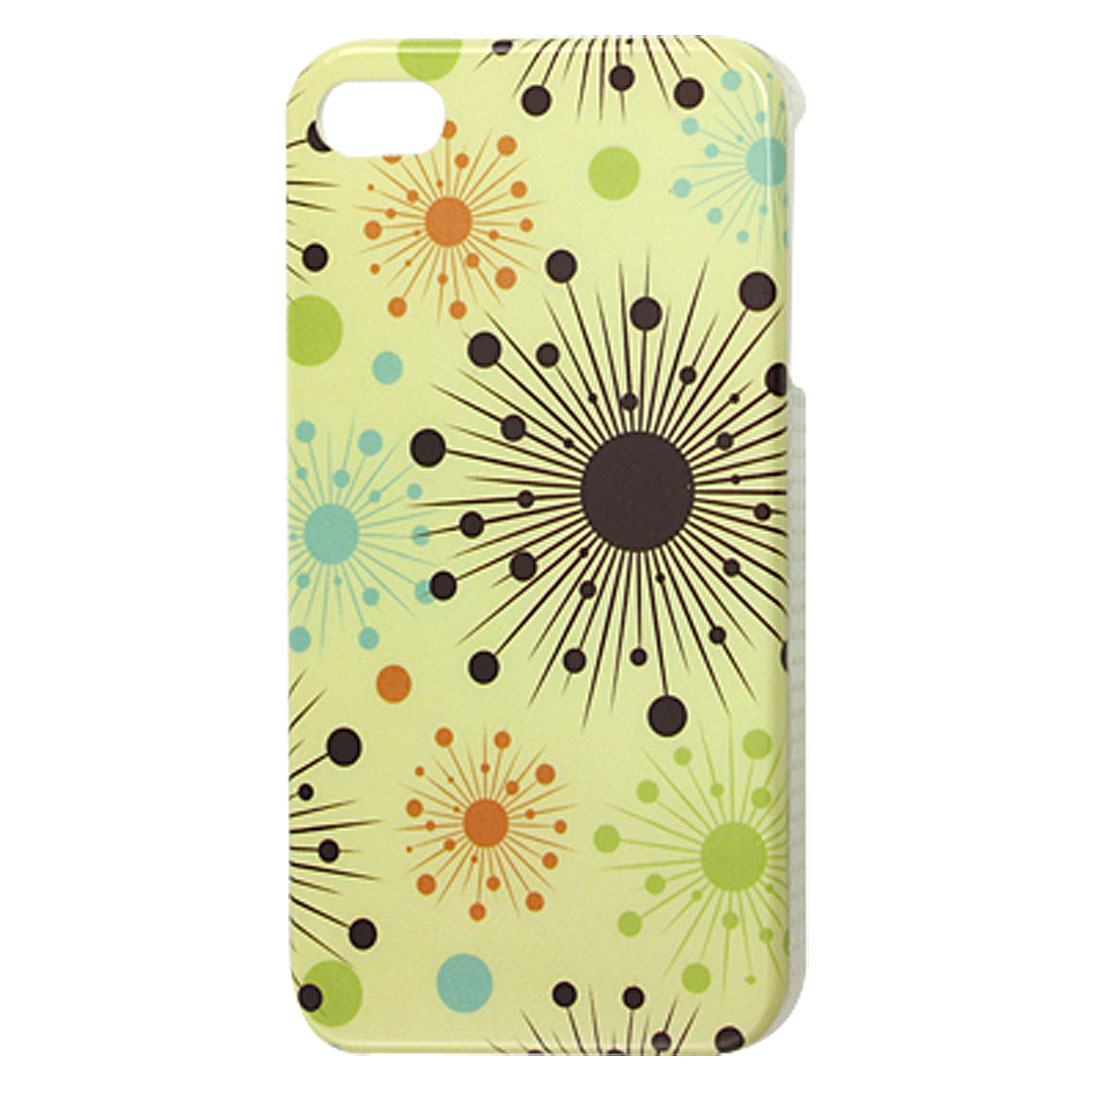 IMD Circles Floral Print Yellow Hard Plastic Back Case for iPhone 4G 4GS